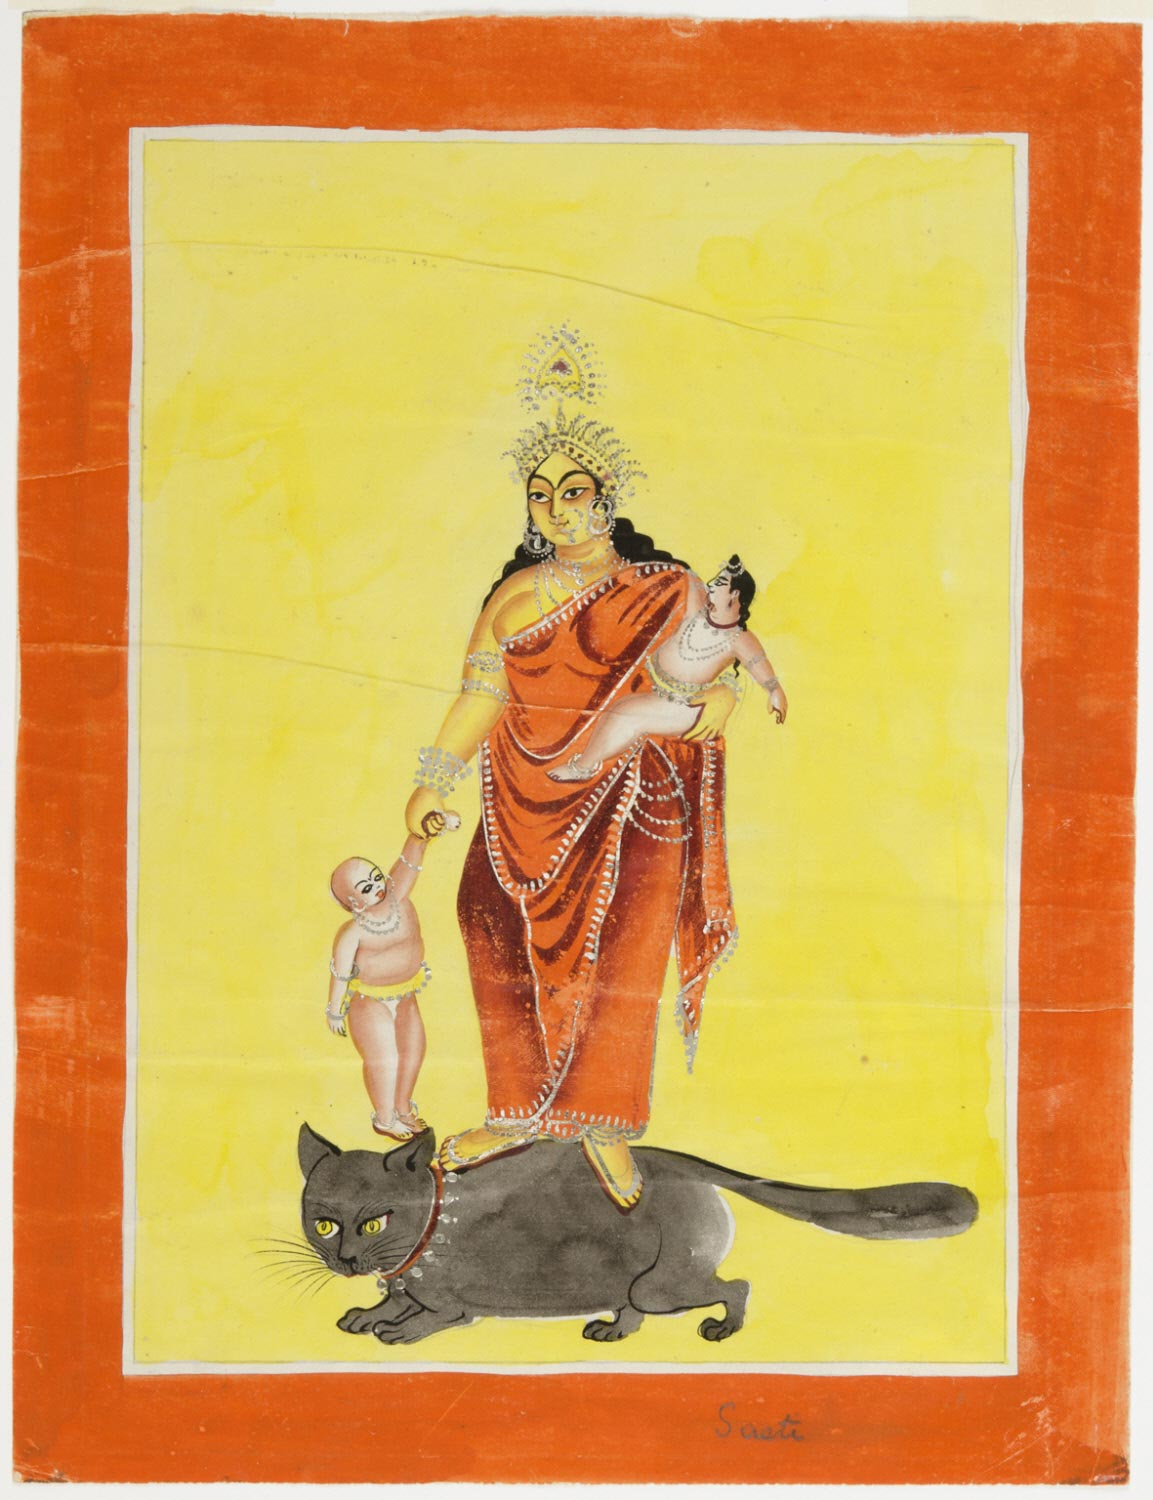 Souvenir Painting of the Goddess Shashthi on a Cat